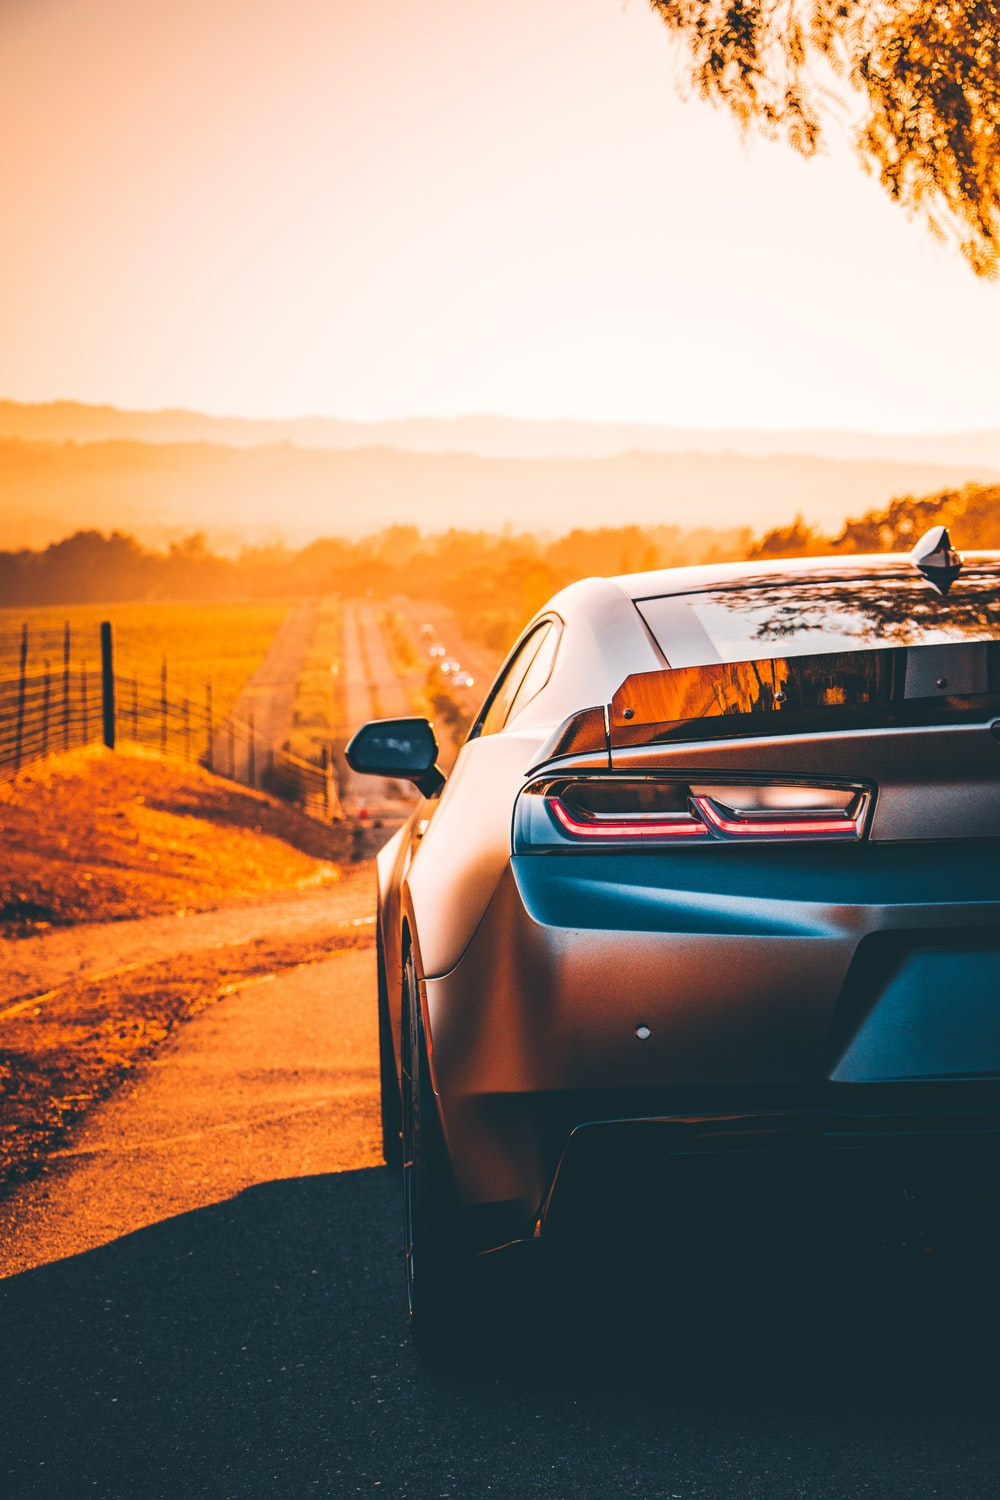 350 Automobile Pictures Hd Download Free Images On Unsplash